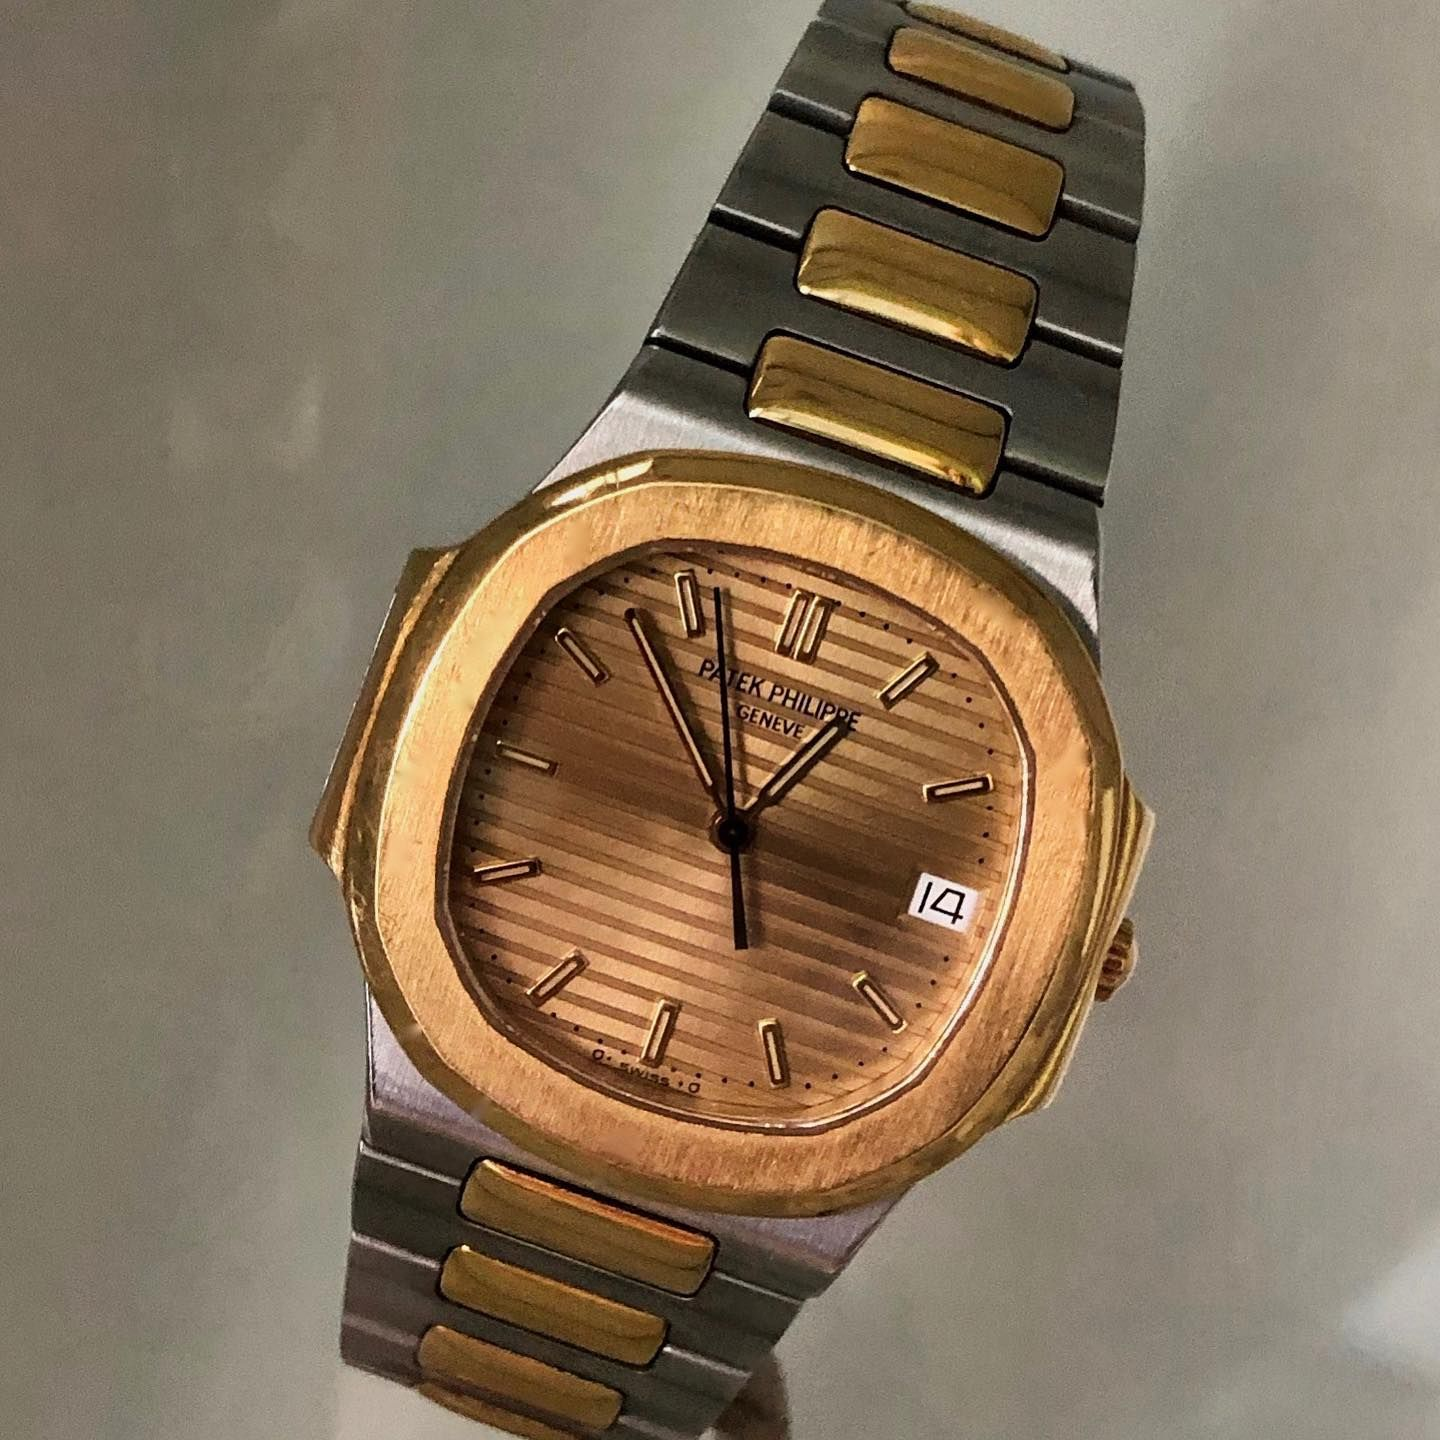 A Icon I Think The Watch Speaks For Itself Patekphilippe Pateknautilus Patekphilippenautilus Patekphillipe In 2020 Patek Philippe Nautilus Watch Ad Wood Watch